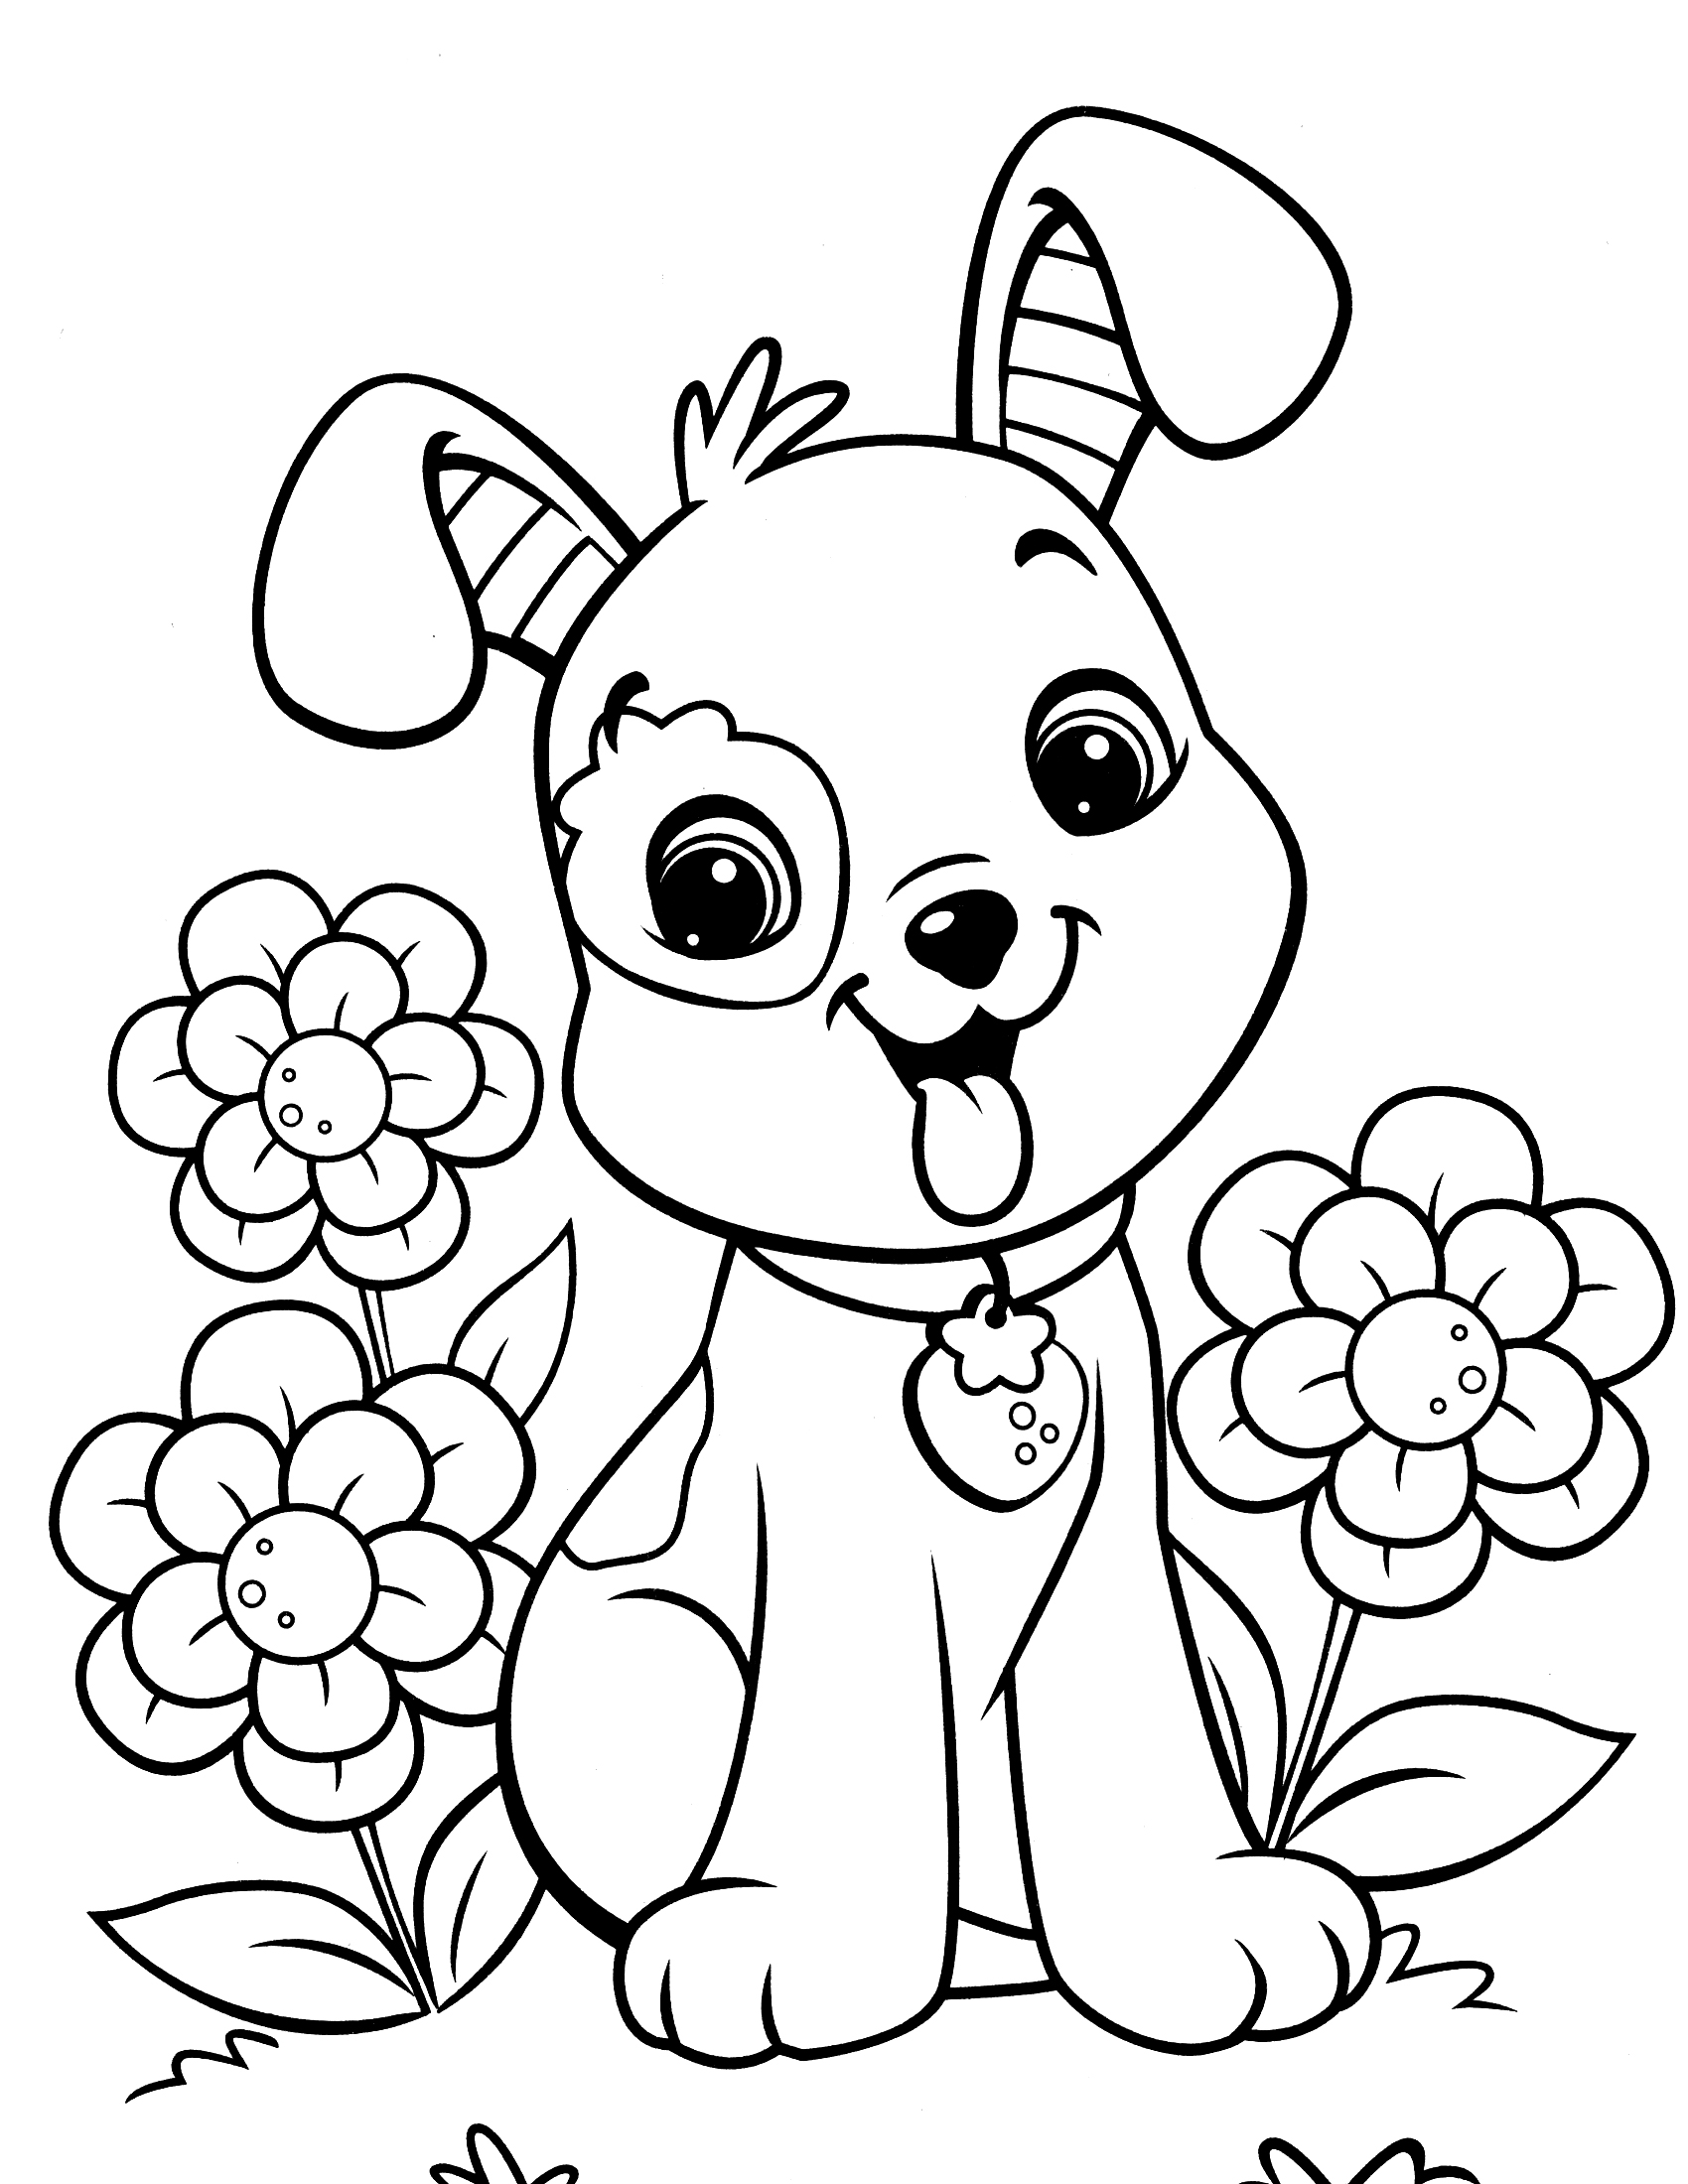 dog color sheets pug dog coloring pages coloring home color sheets dog